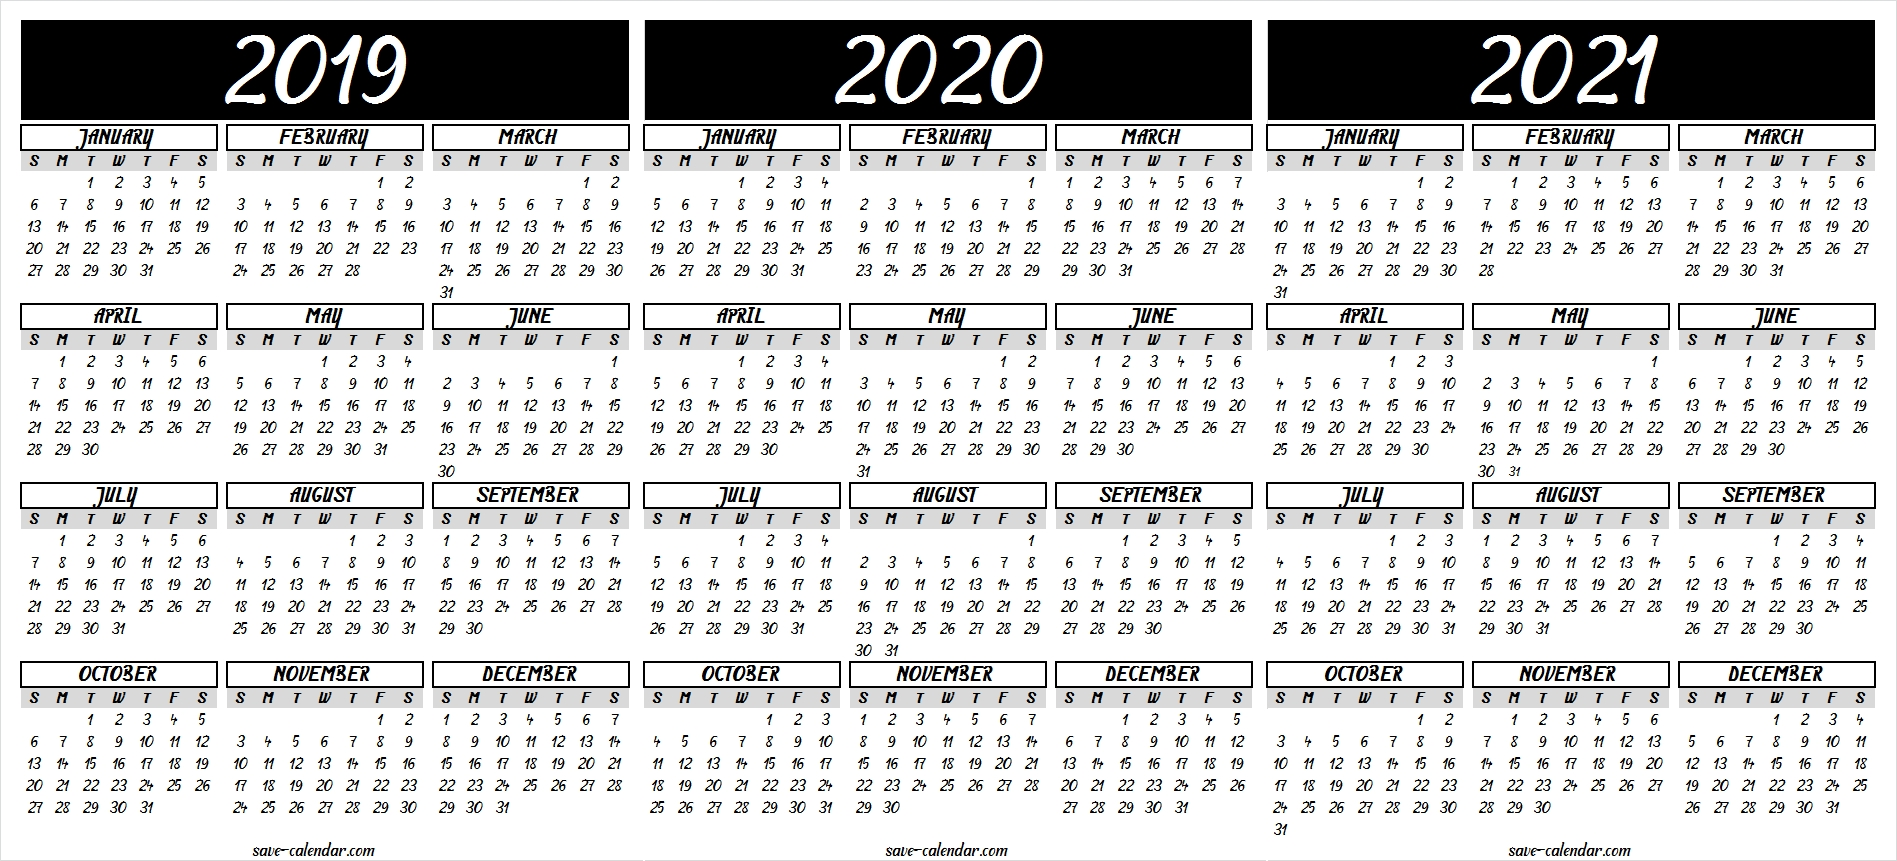 2019 2020 2021 Calendar Printable | 2021 Calendar, Templates regarding Free Printable Calendar For 2019 2020 2021